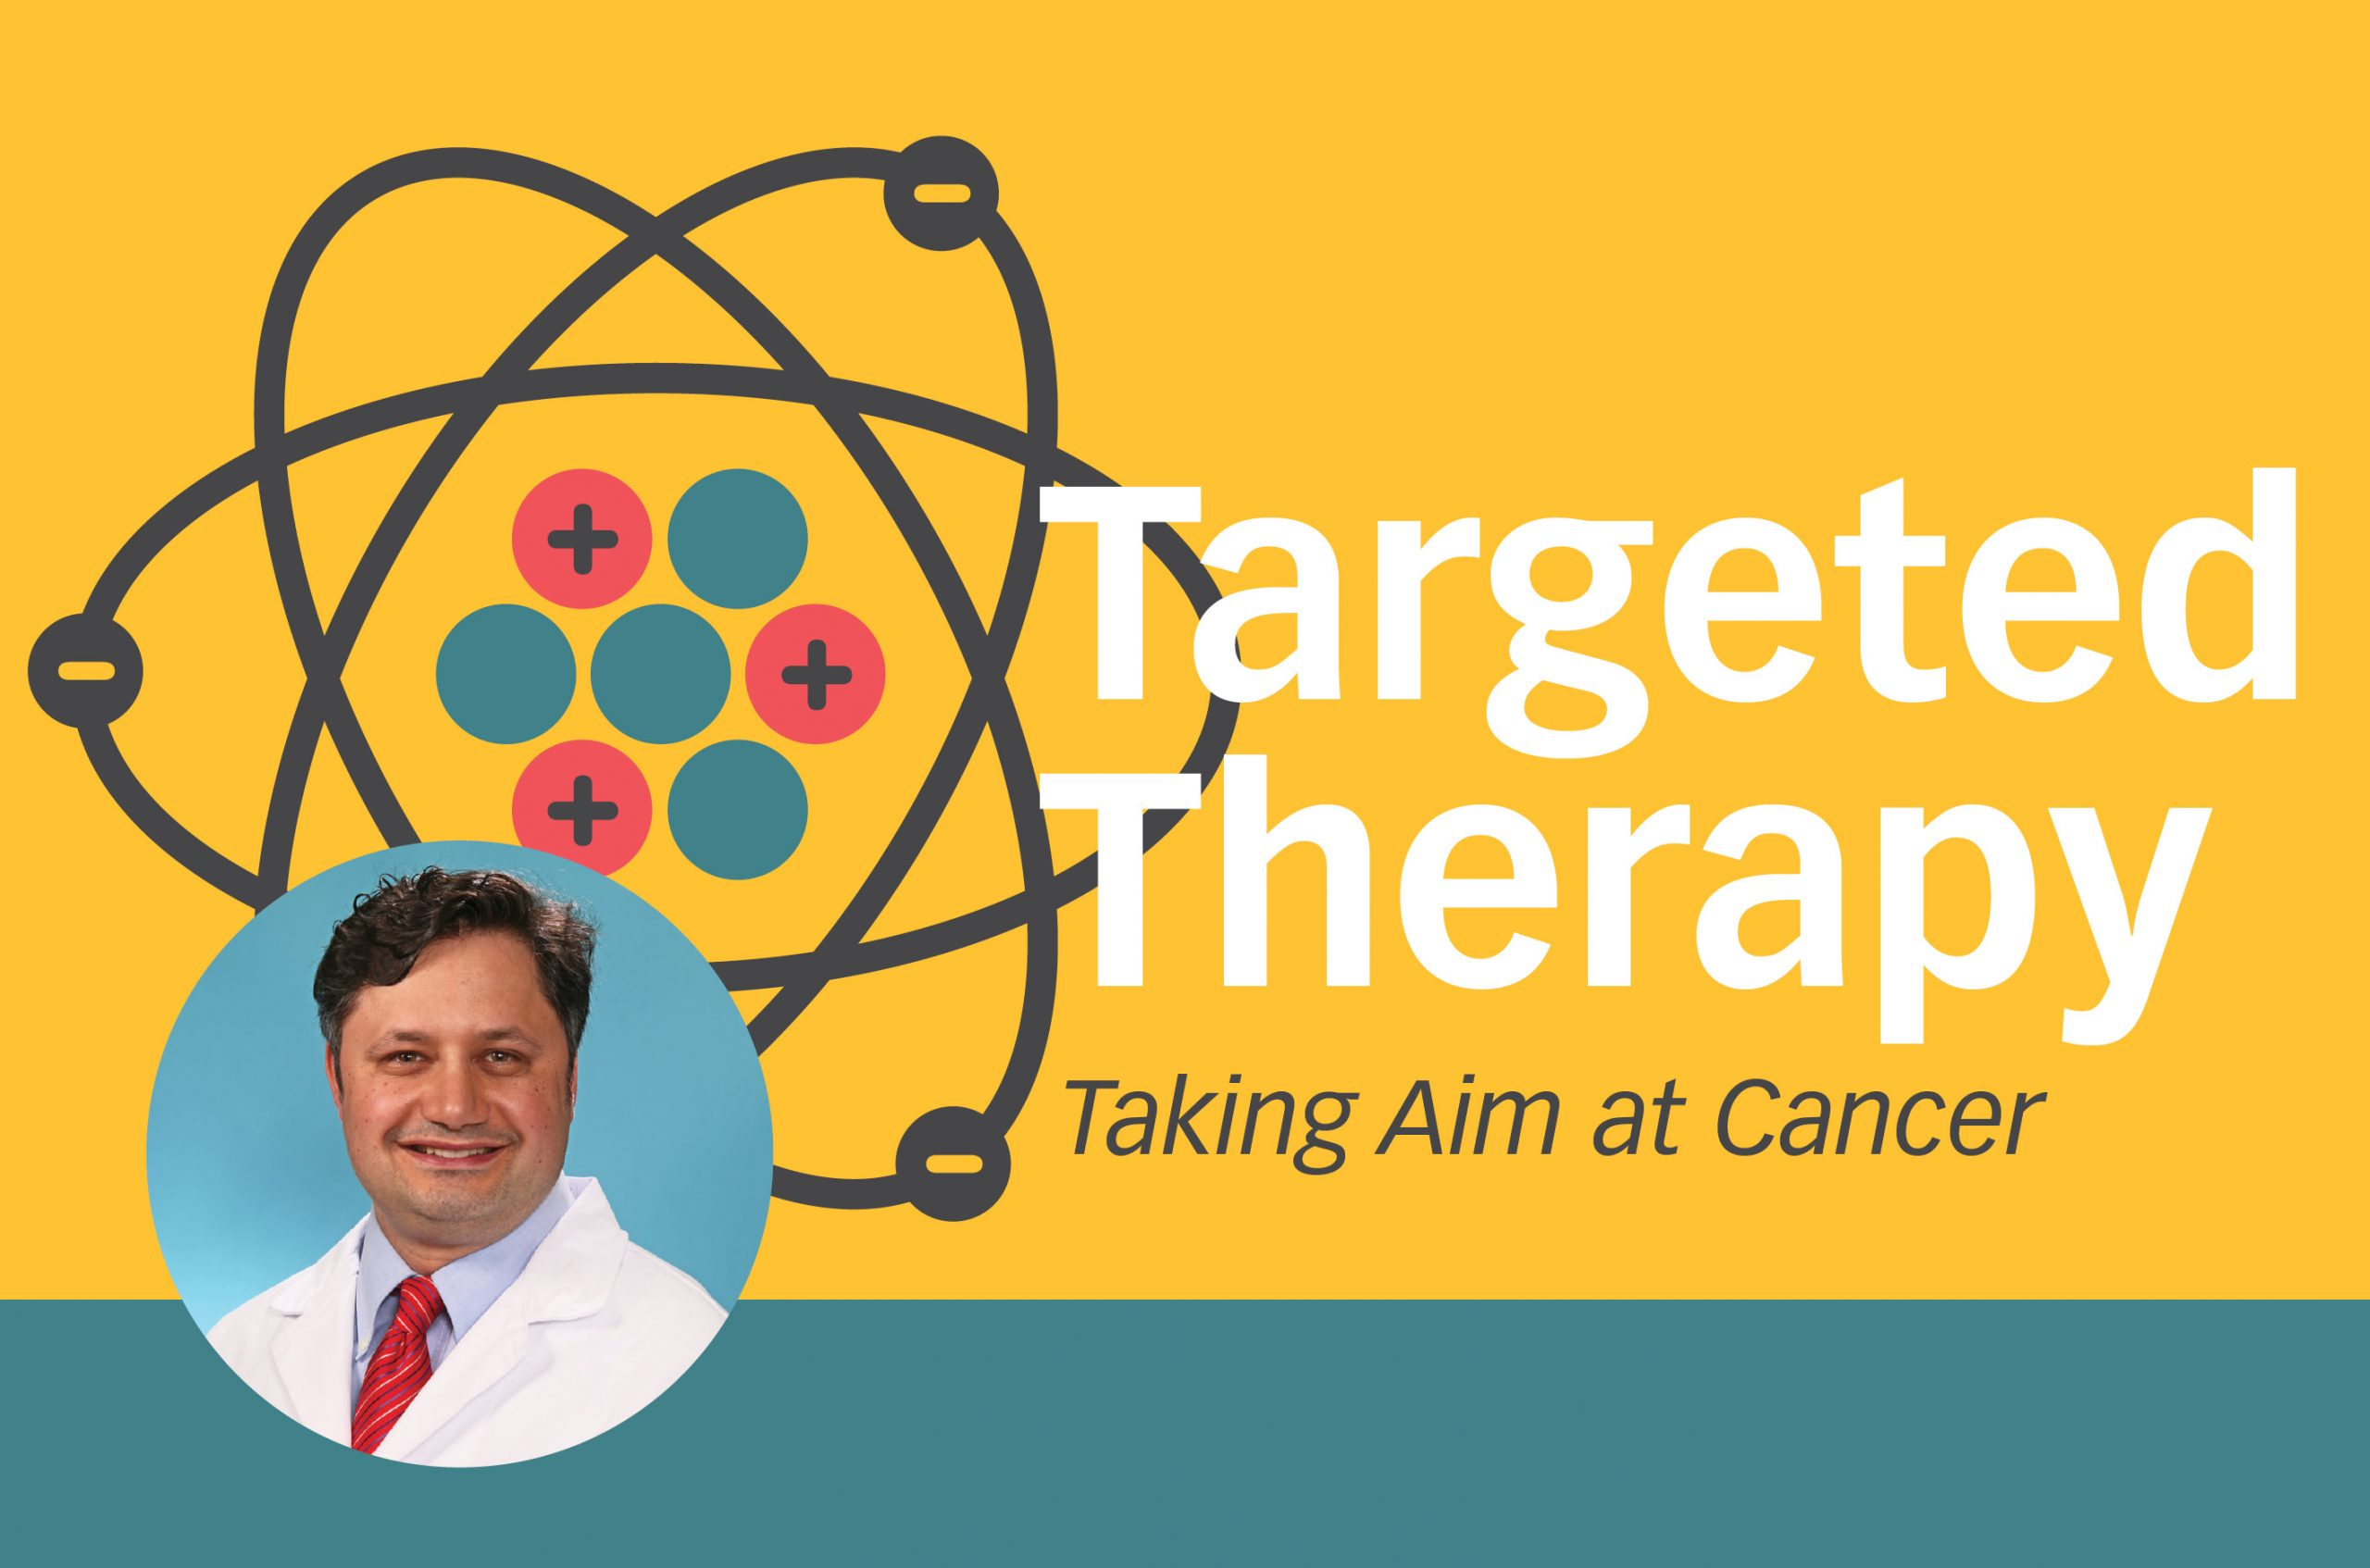 Targeted Therapy: Taking Aim at Cancer